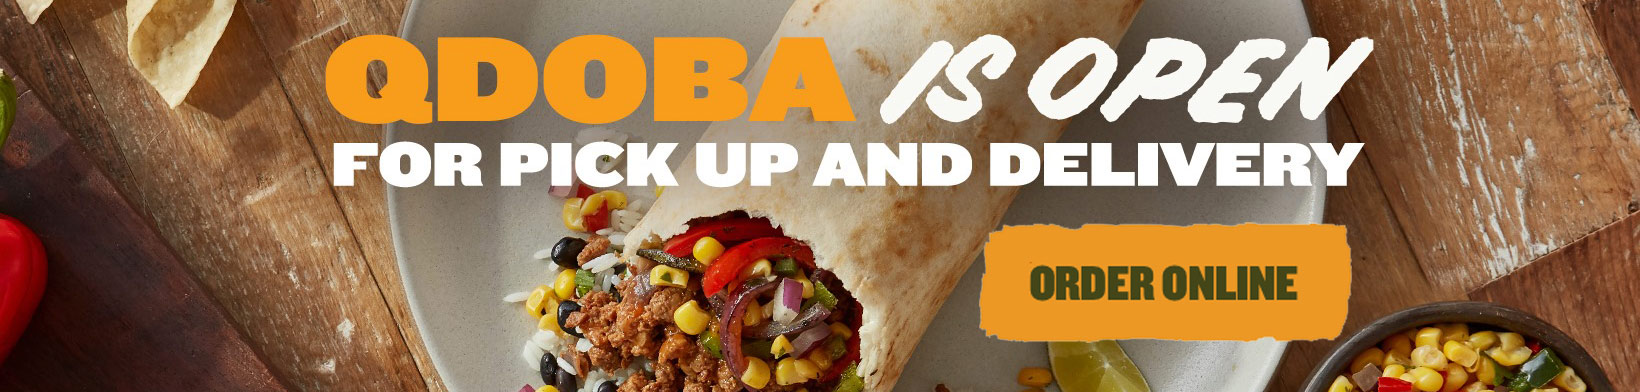 Qdoba Wisconsin is Open, order online for pick-up or delivery